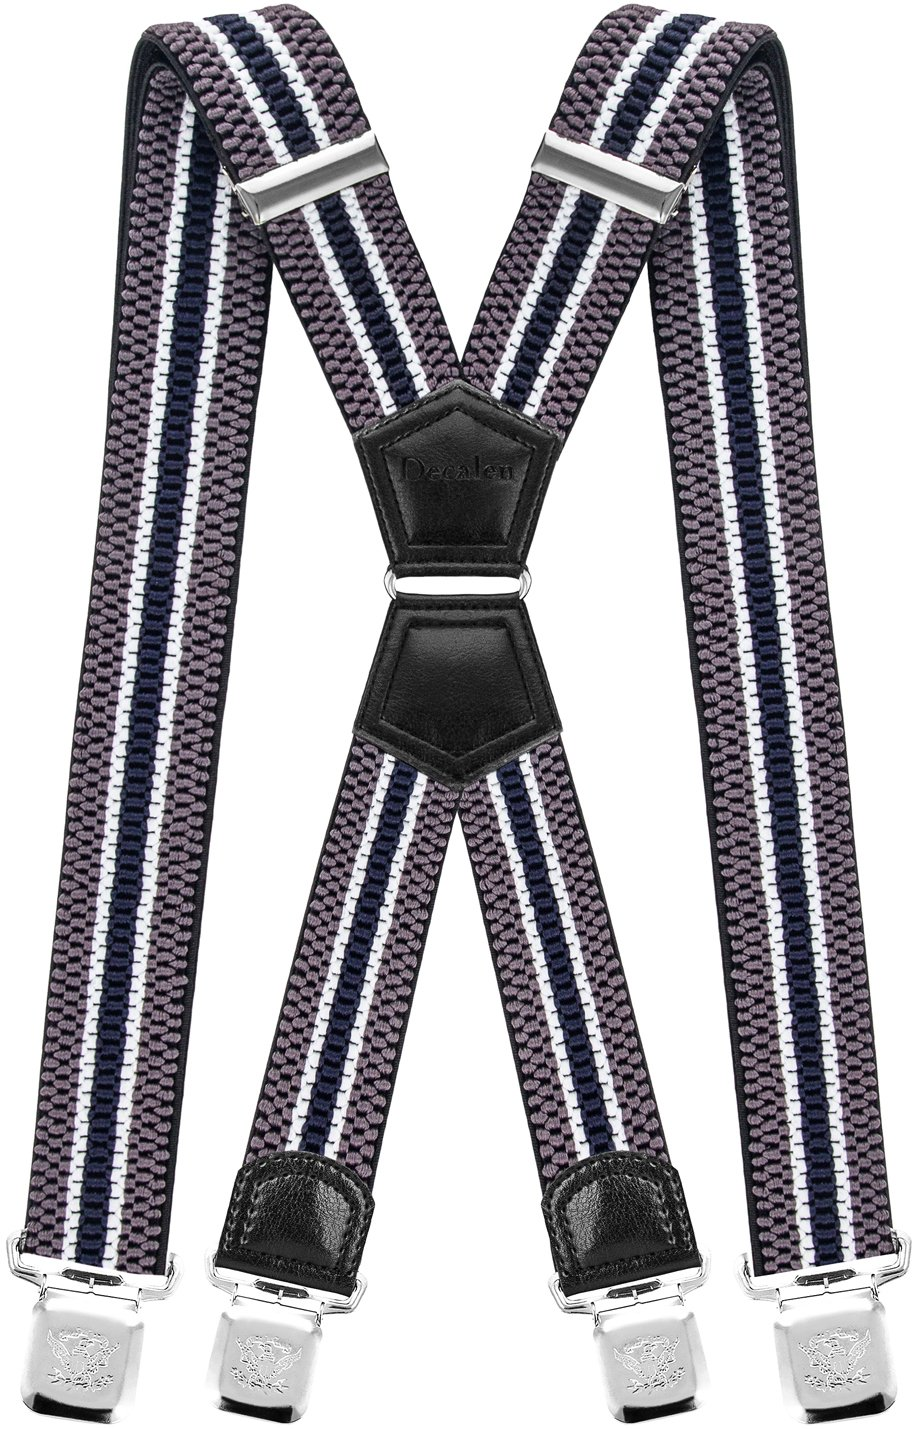 Mens Suspenders X Style Very Strong Clips Adjustable One Size Fits All Heavy Duty Braces Model 01-XX-UK